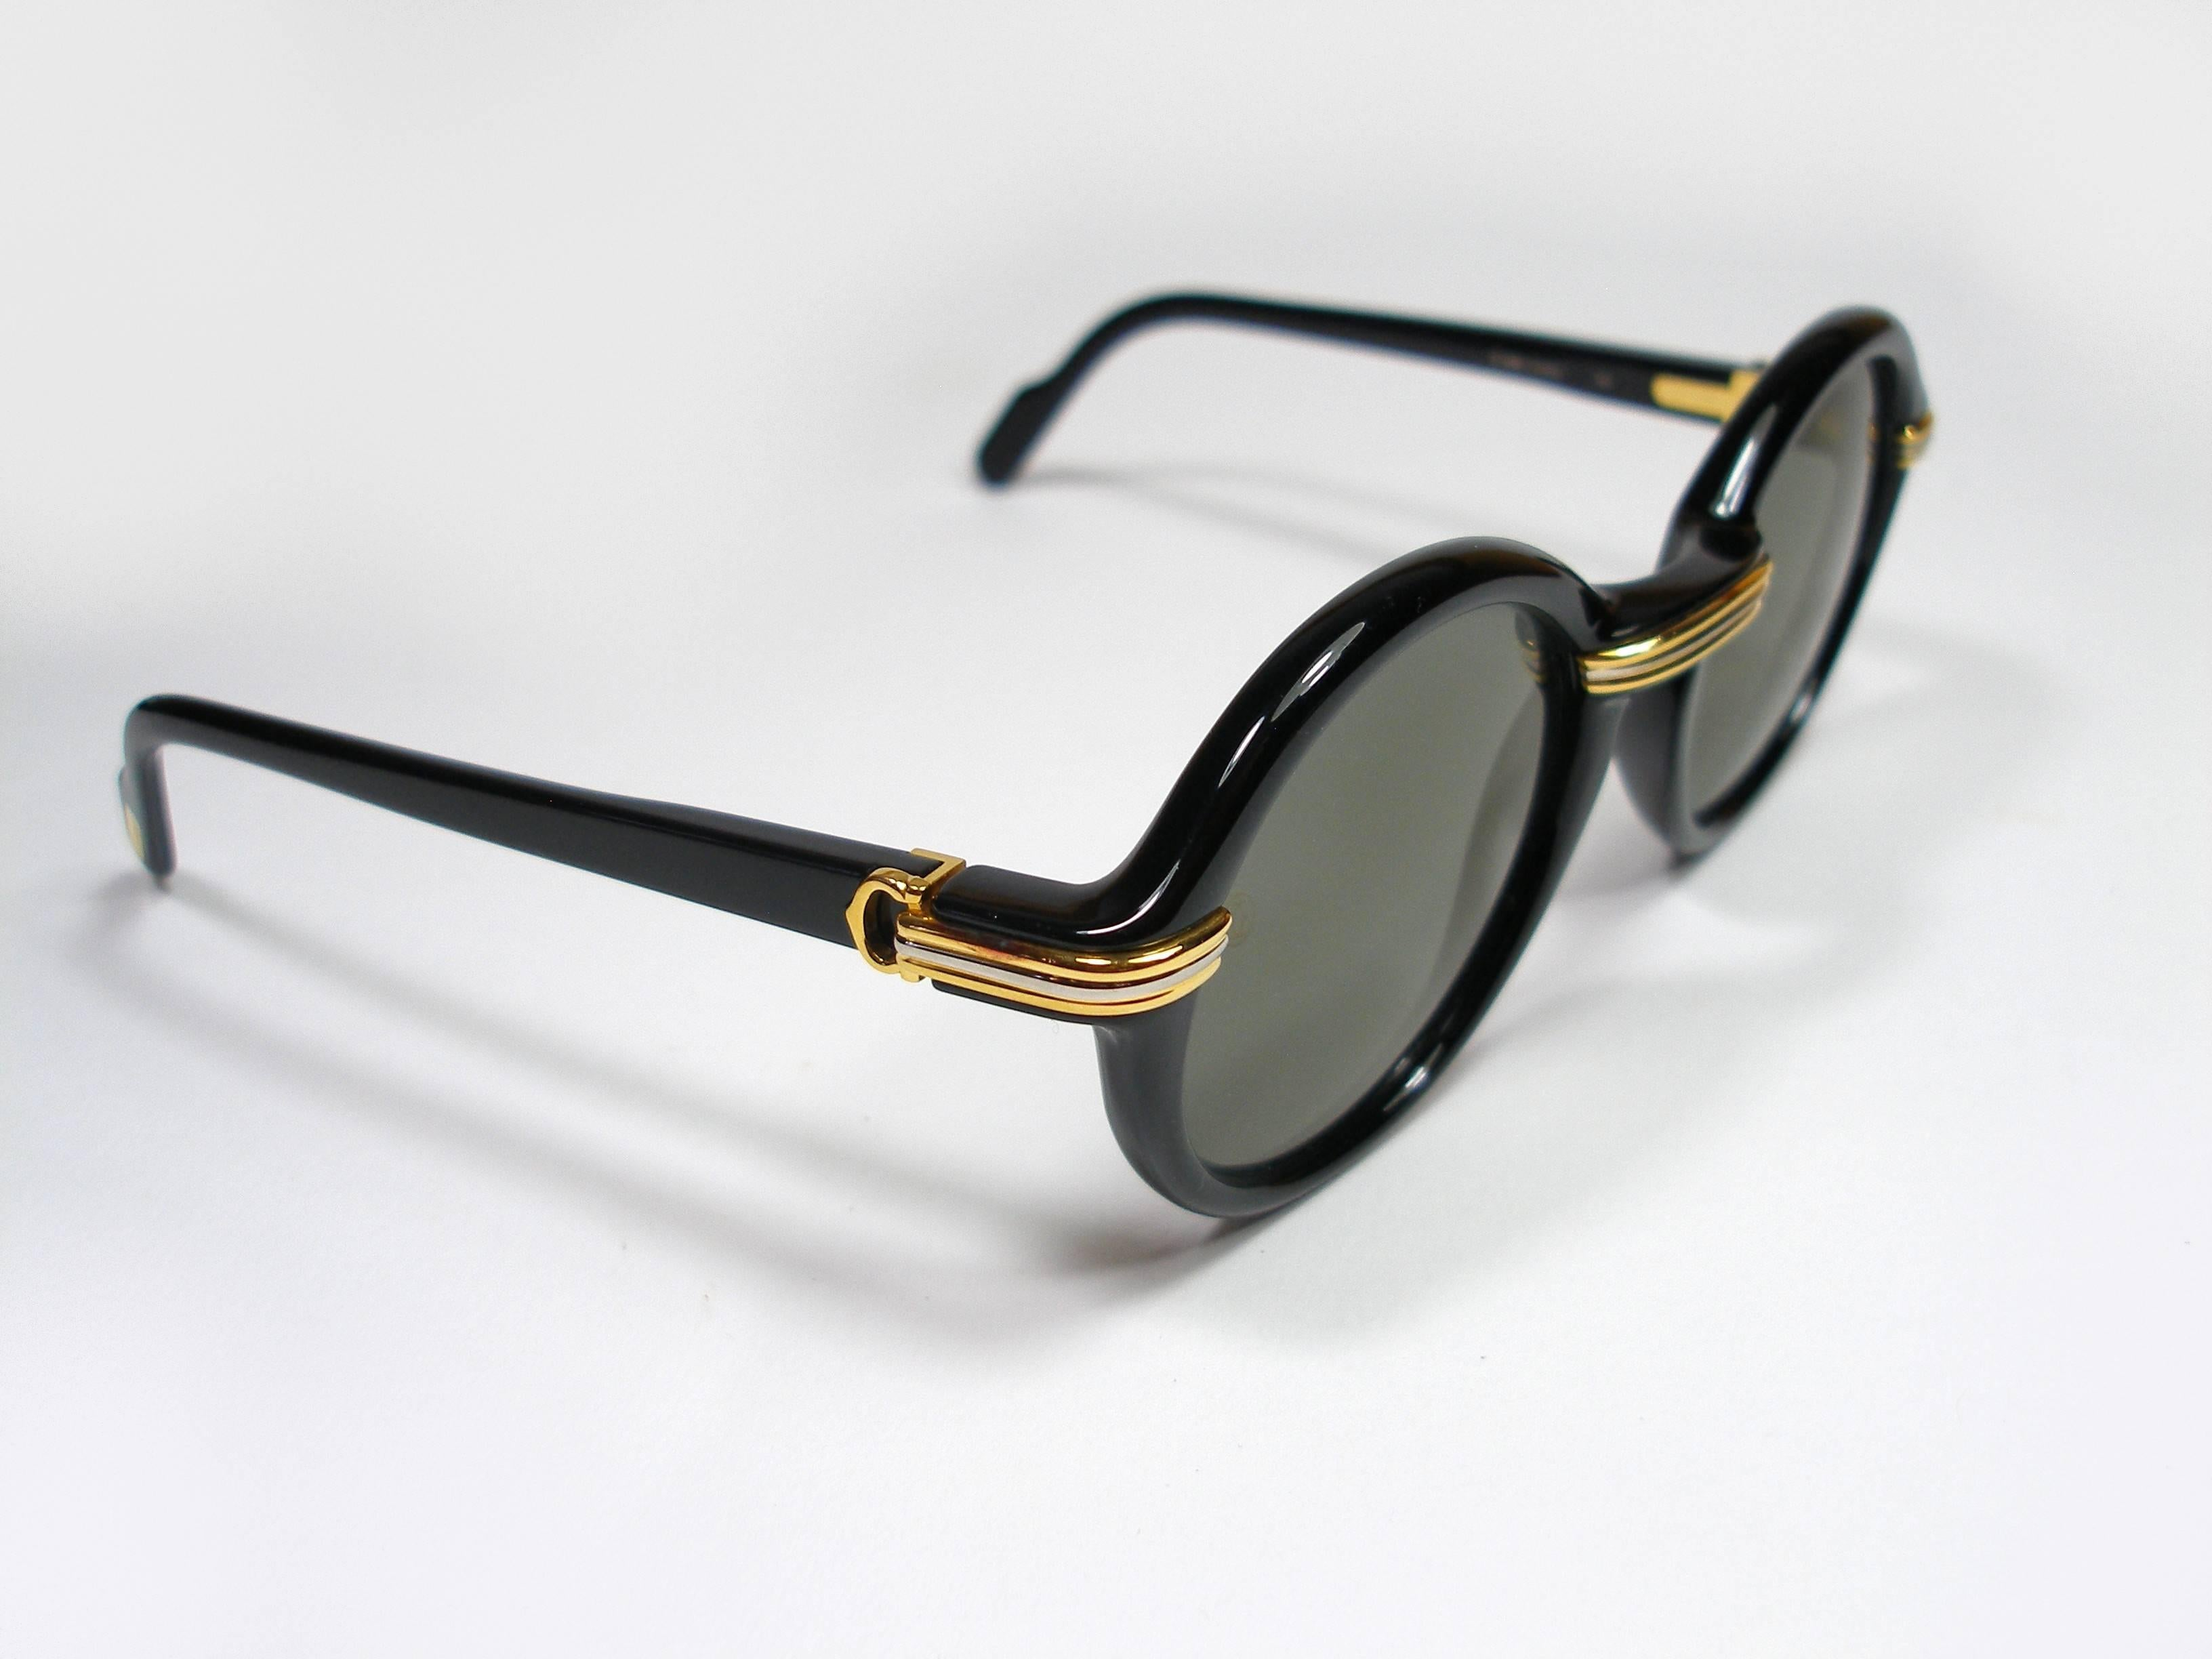 15a4ef1a950 Collector Vintage Cartier Cabriolet Round Black Gold Sunglasses France  1991 s at 1stdibs